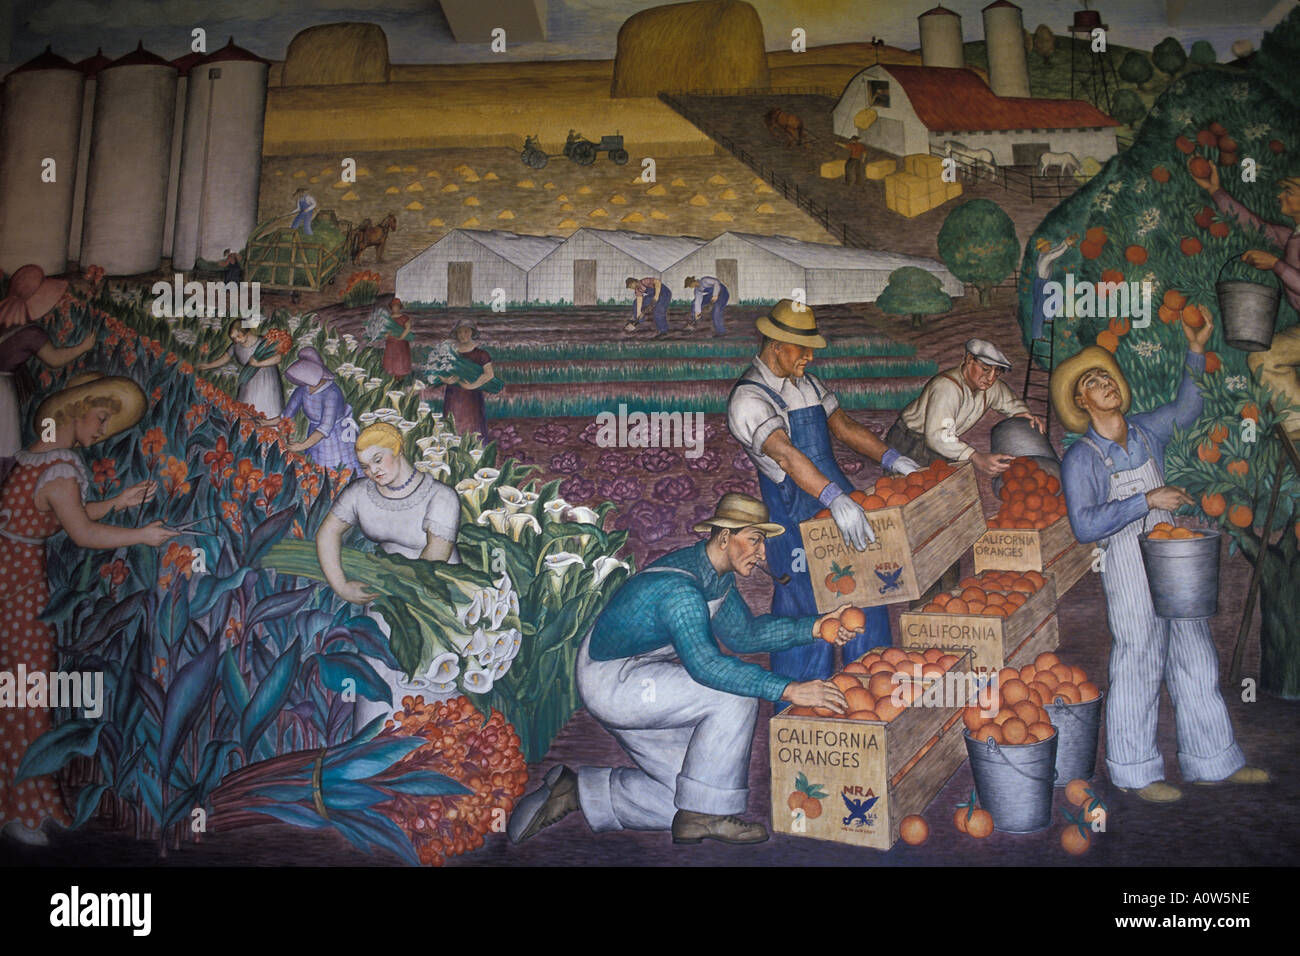 Agricultural life mural painted in the Coit Tower San Francisco California - Stock Image